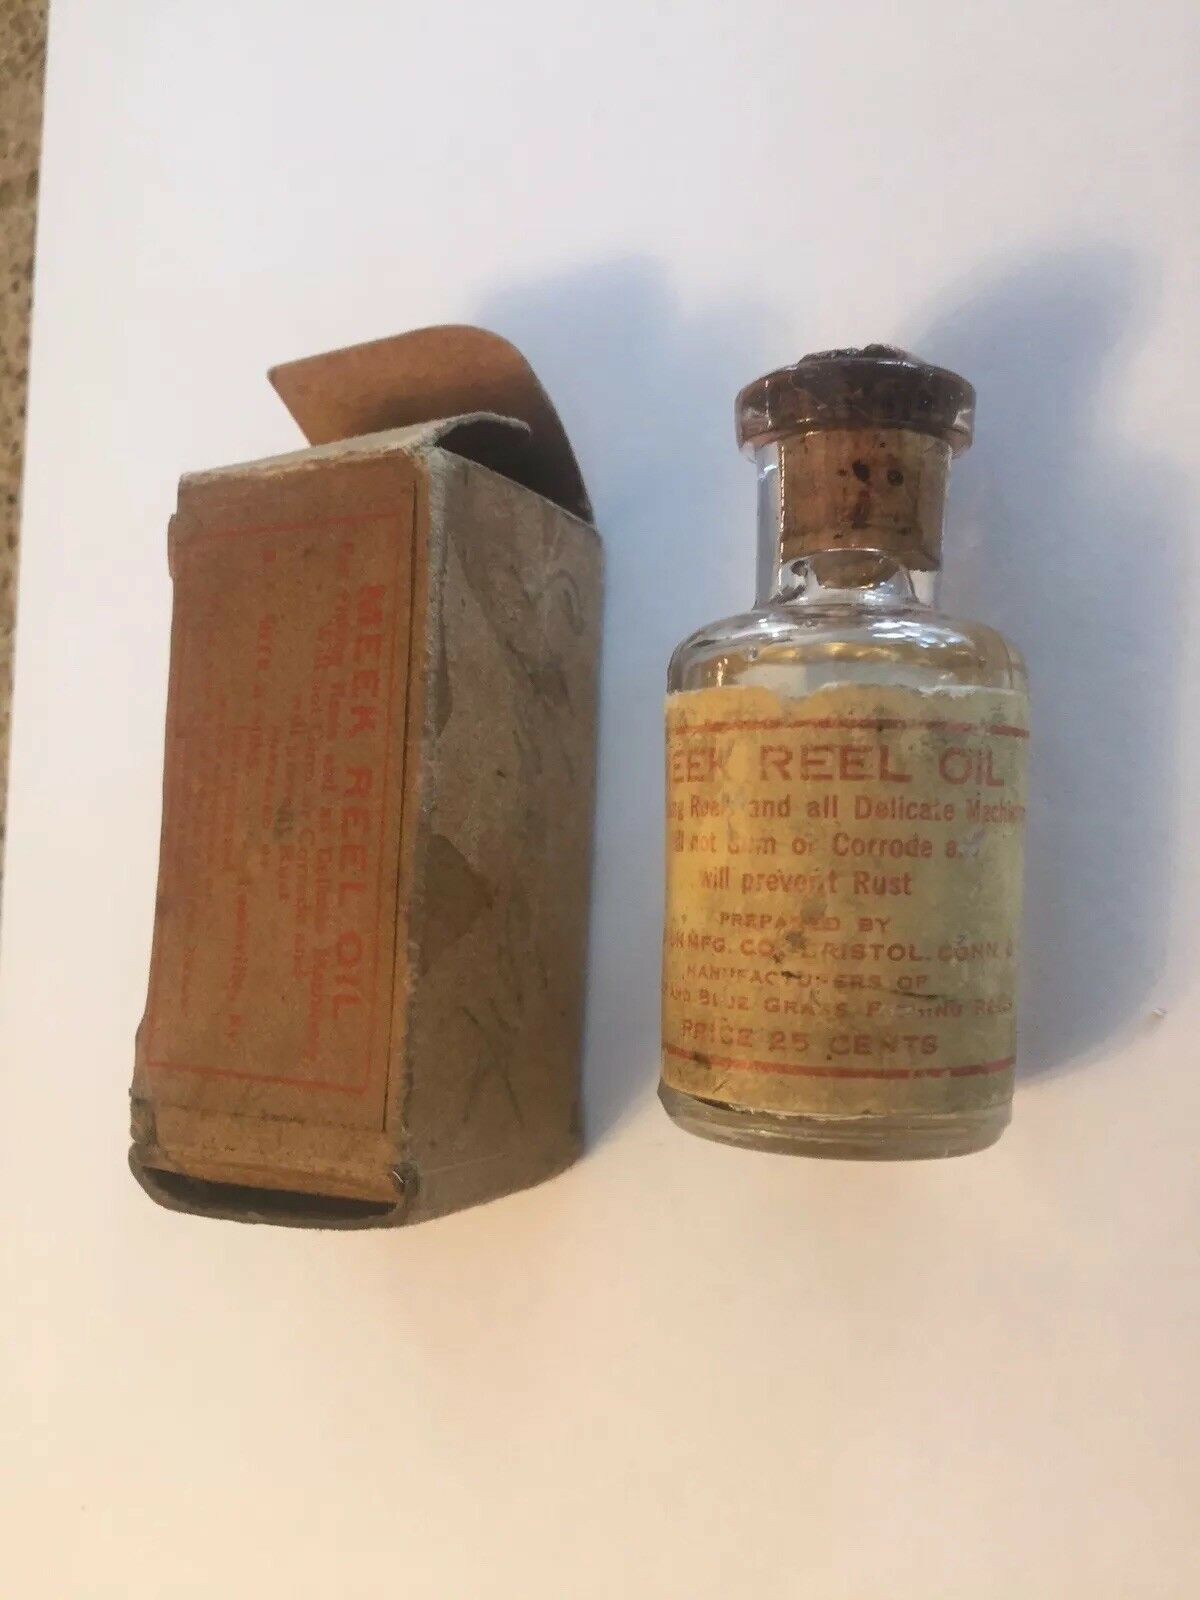 Rare B.F MEEK & SONS BAIT CASTING OIL BOTTLE AND BOX